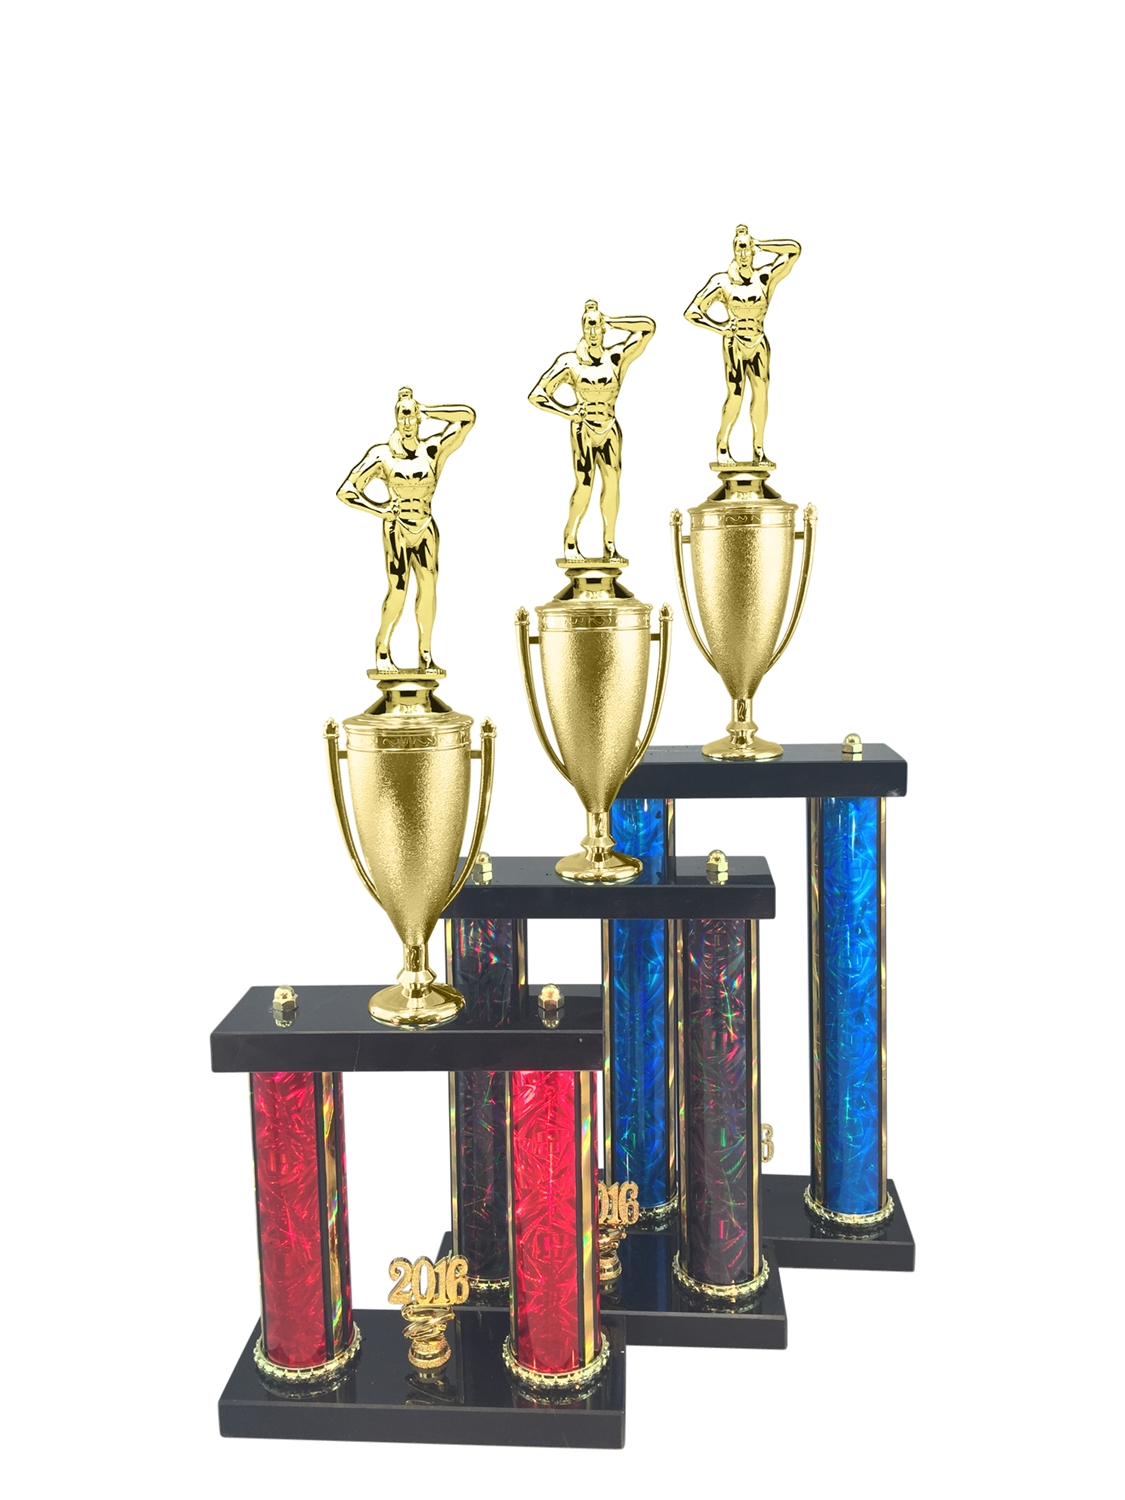 Female Body Building Trophy Available in 11 Color & 3 Size Options